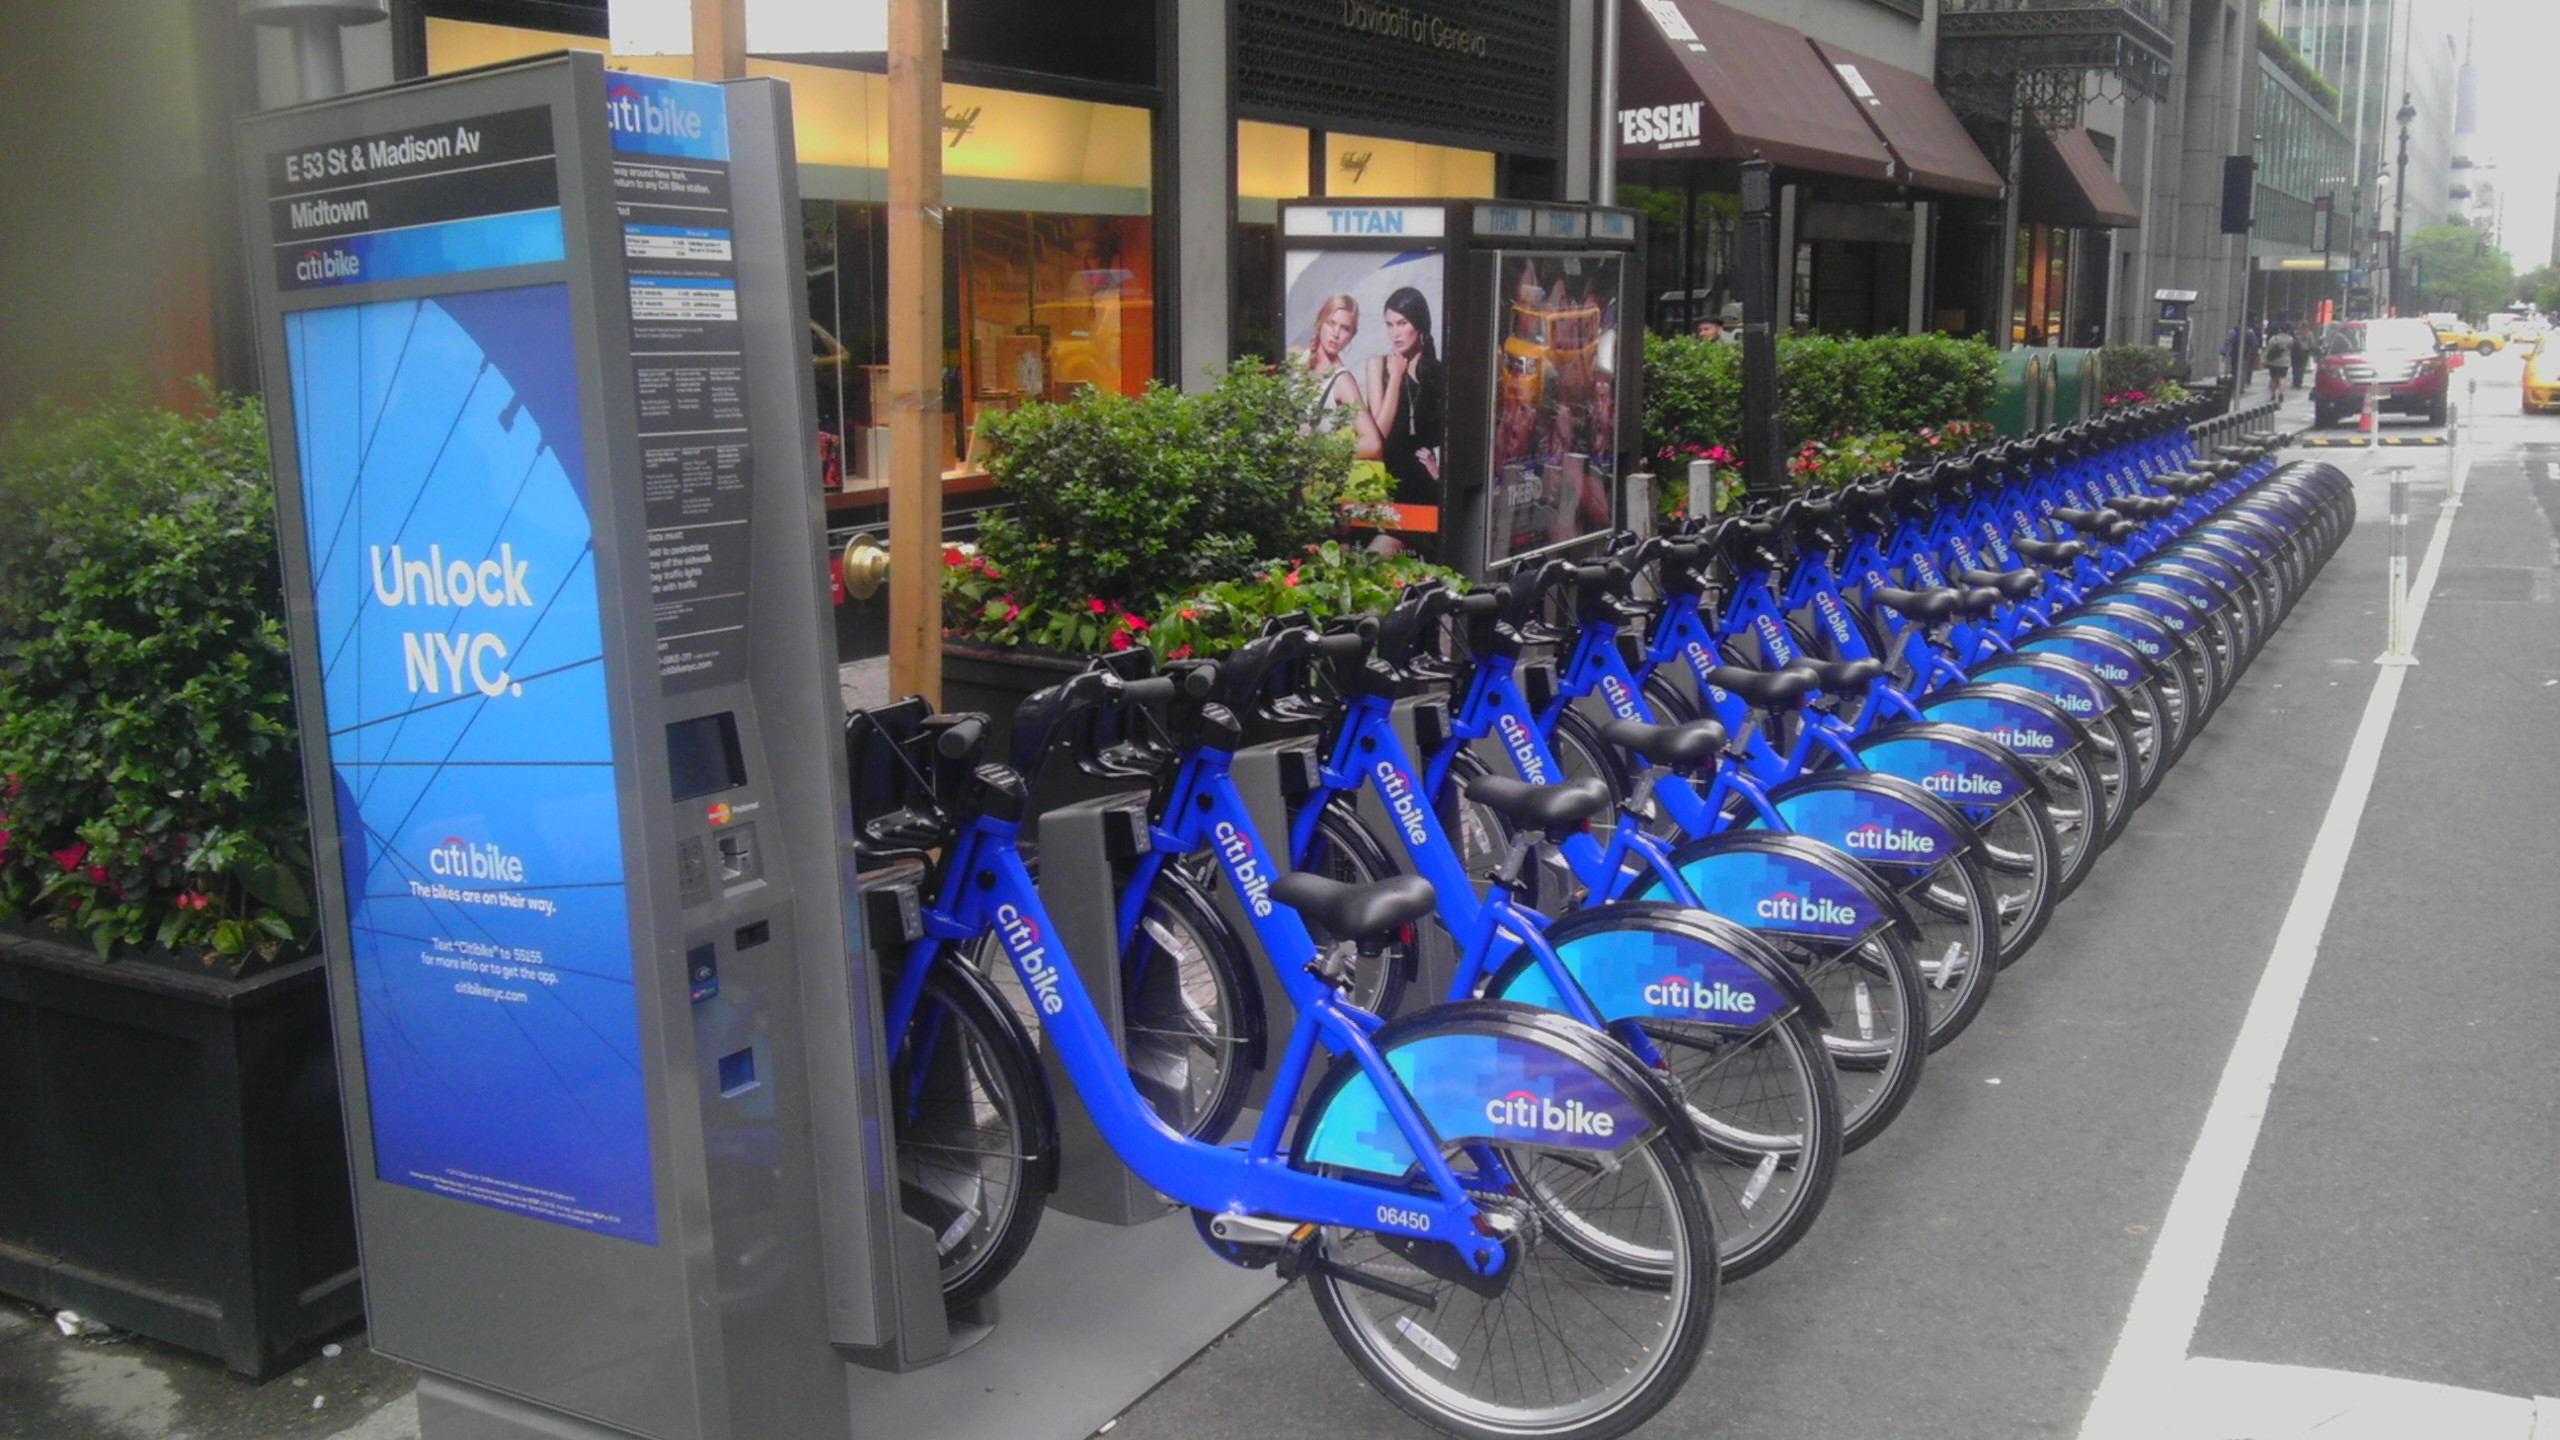 Bikes In Nyc Rent Citi Bike opened in New York